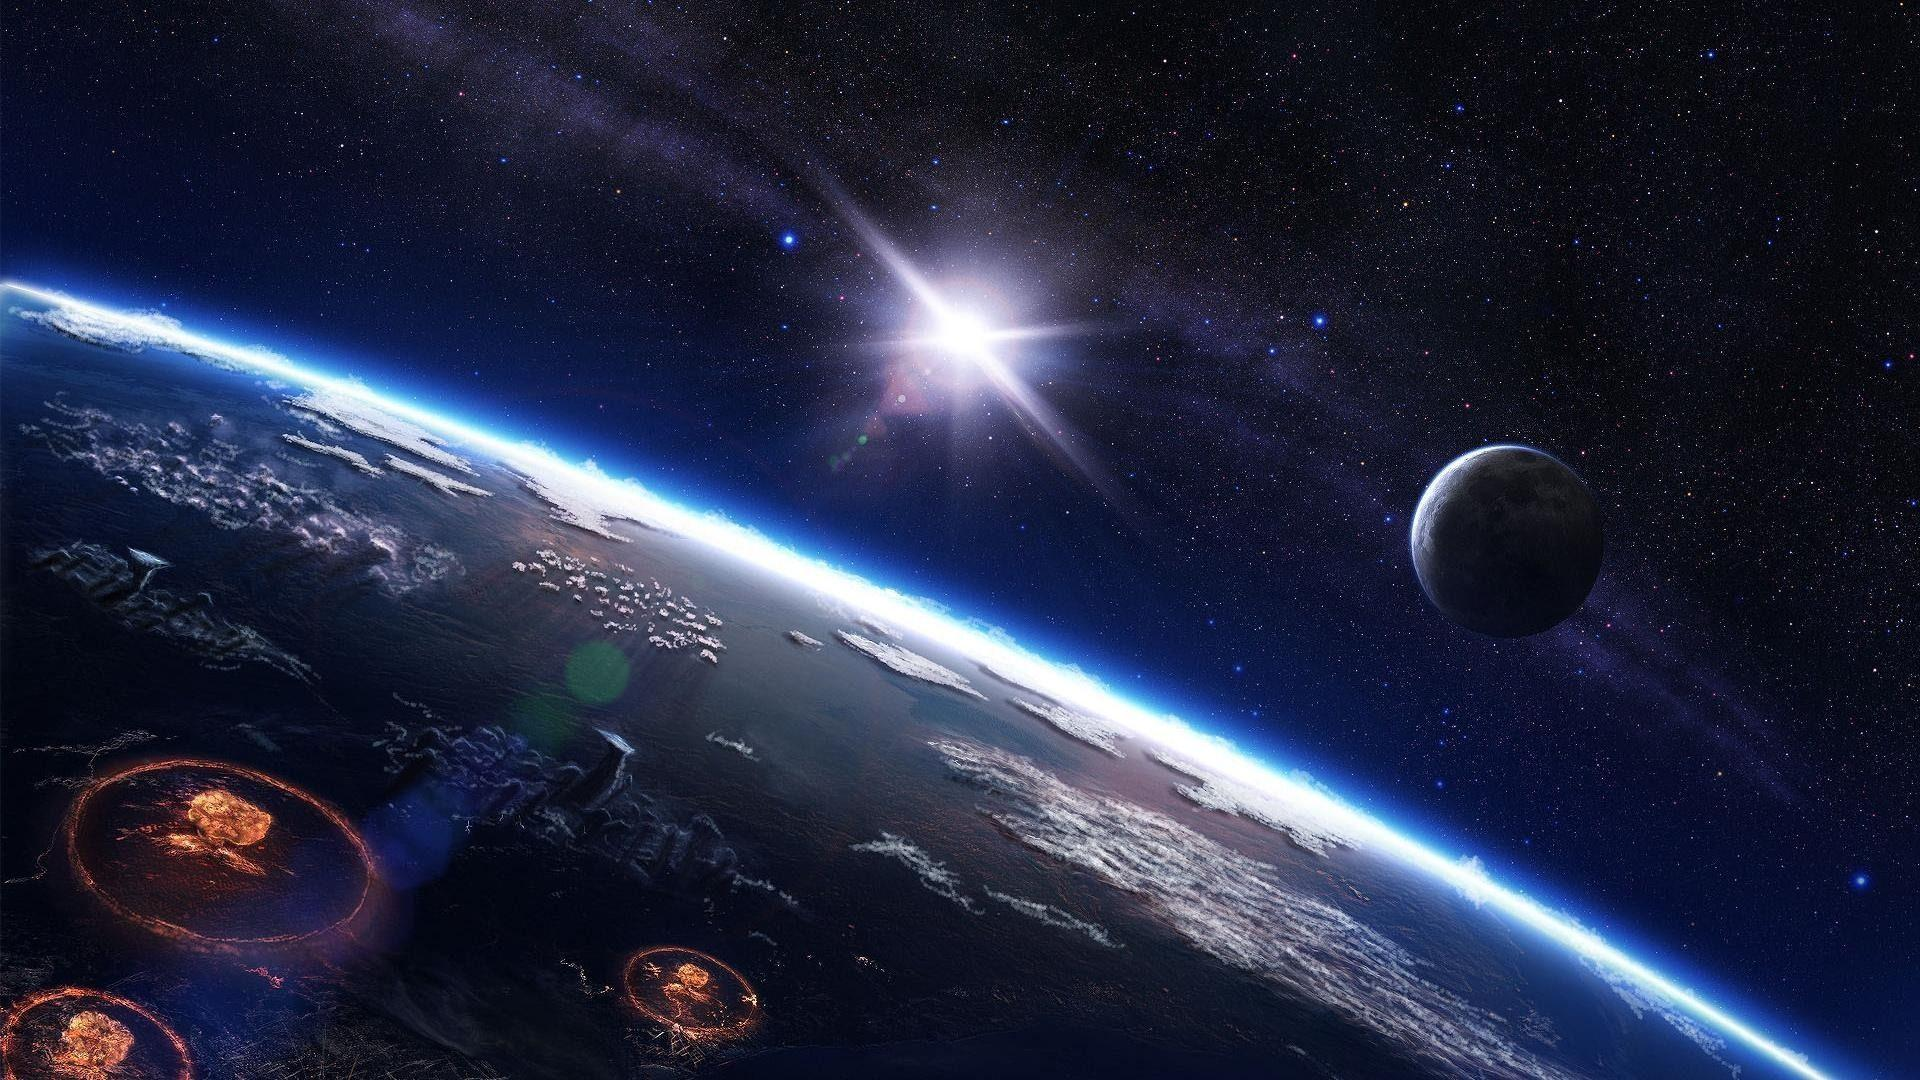 1920x1080 Hd Space Wallpapers Top Free 1920x1080 Hd Space